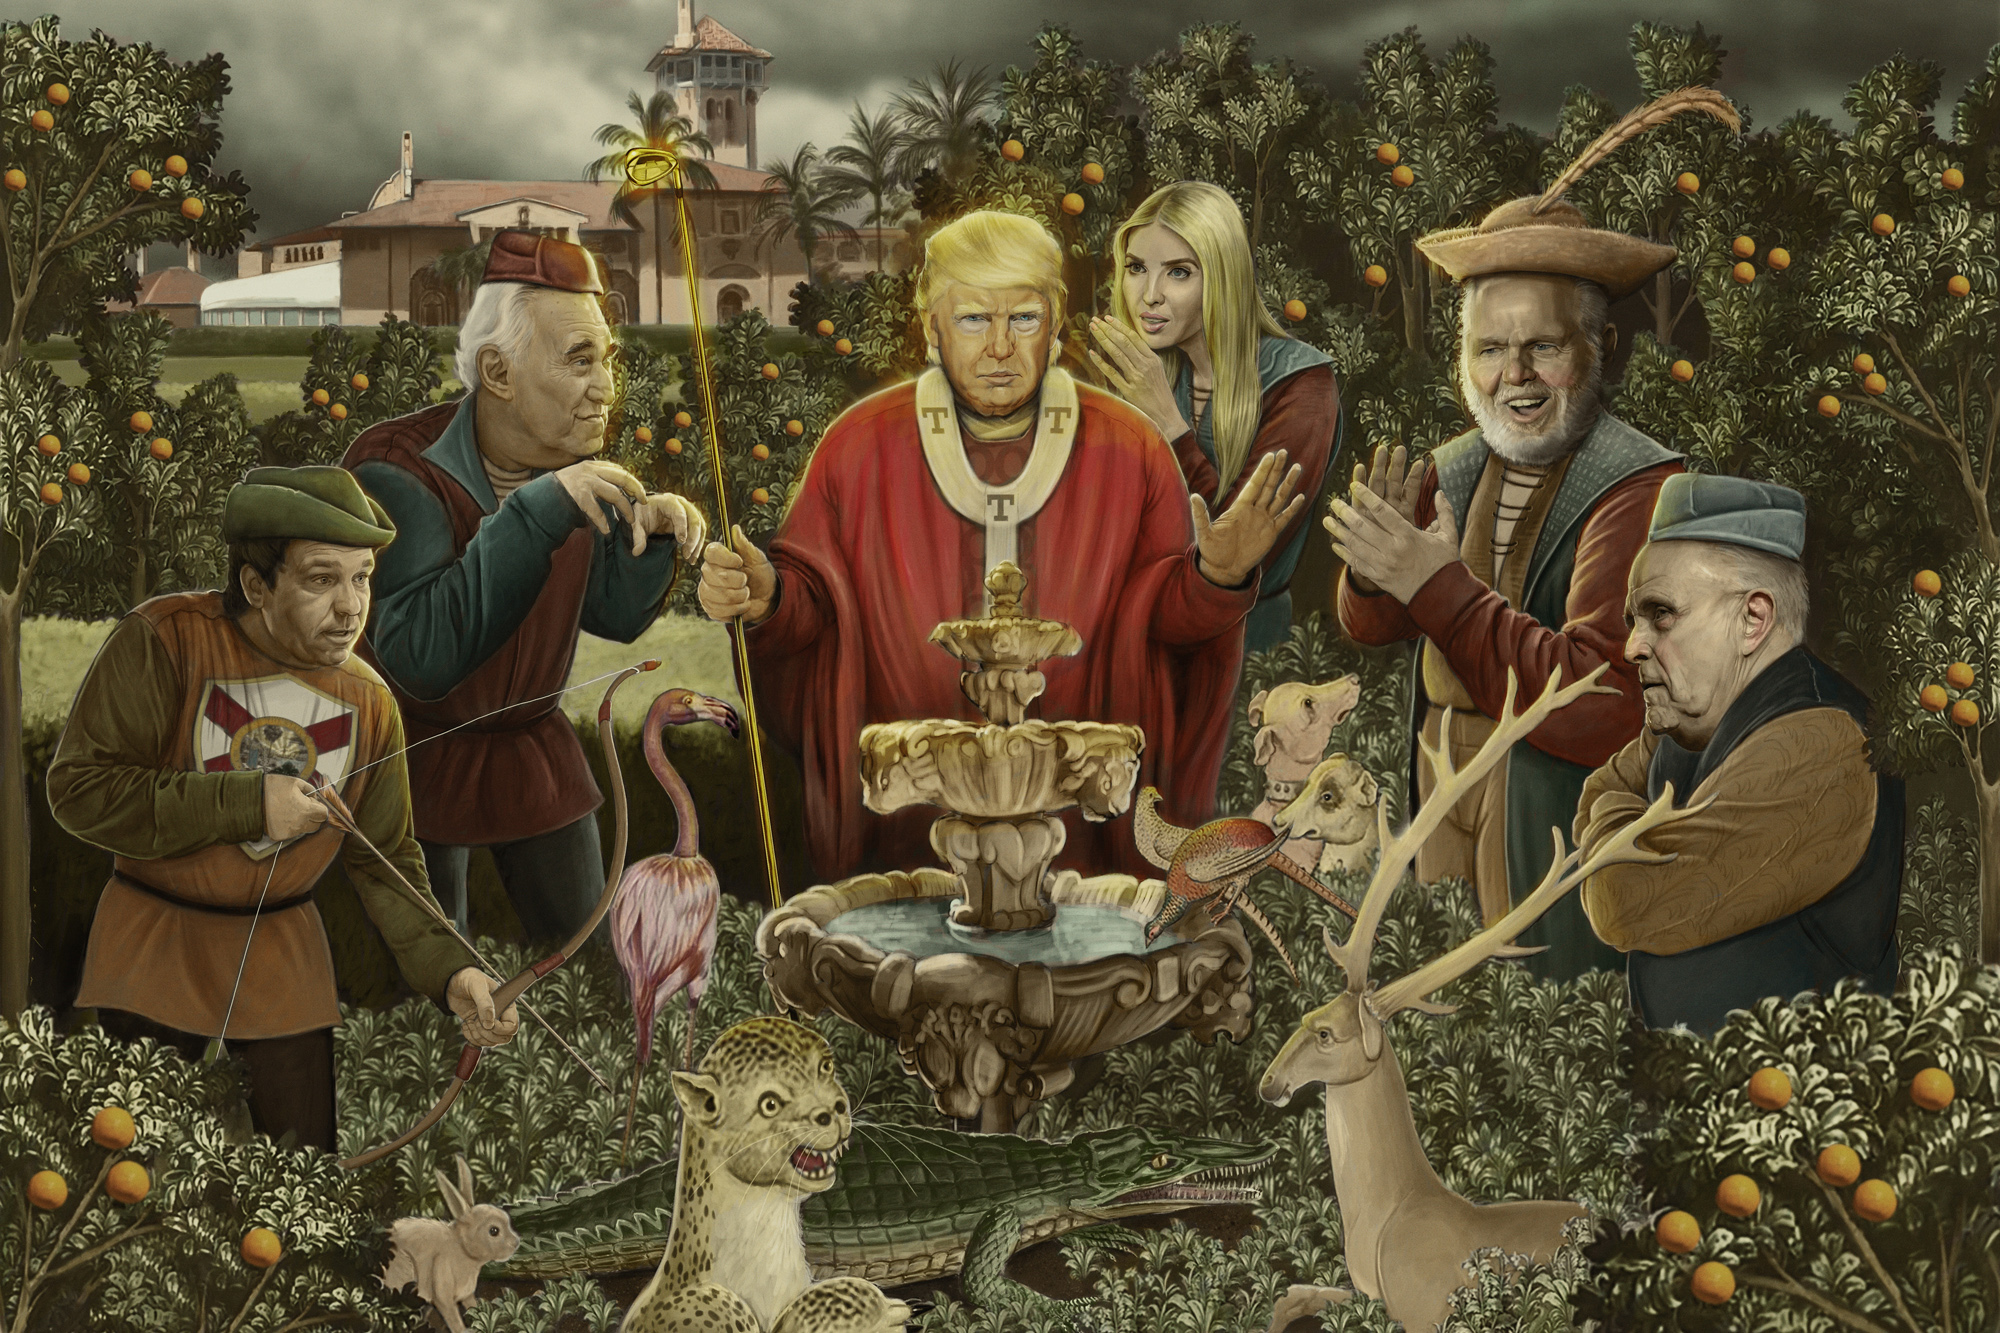 The Antipope of Mar-a-Lago